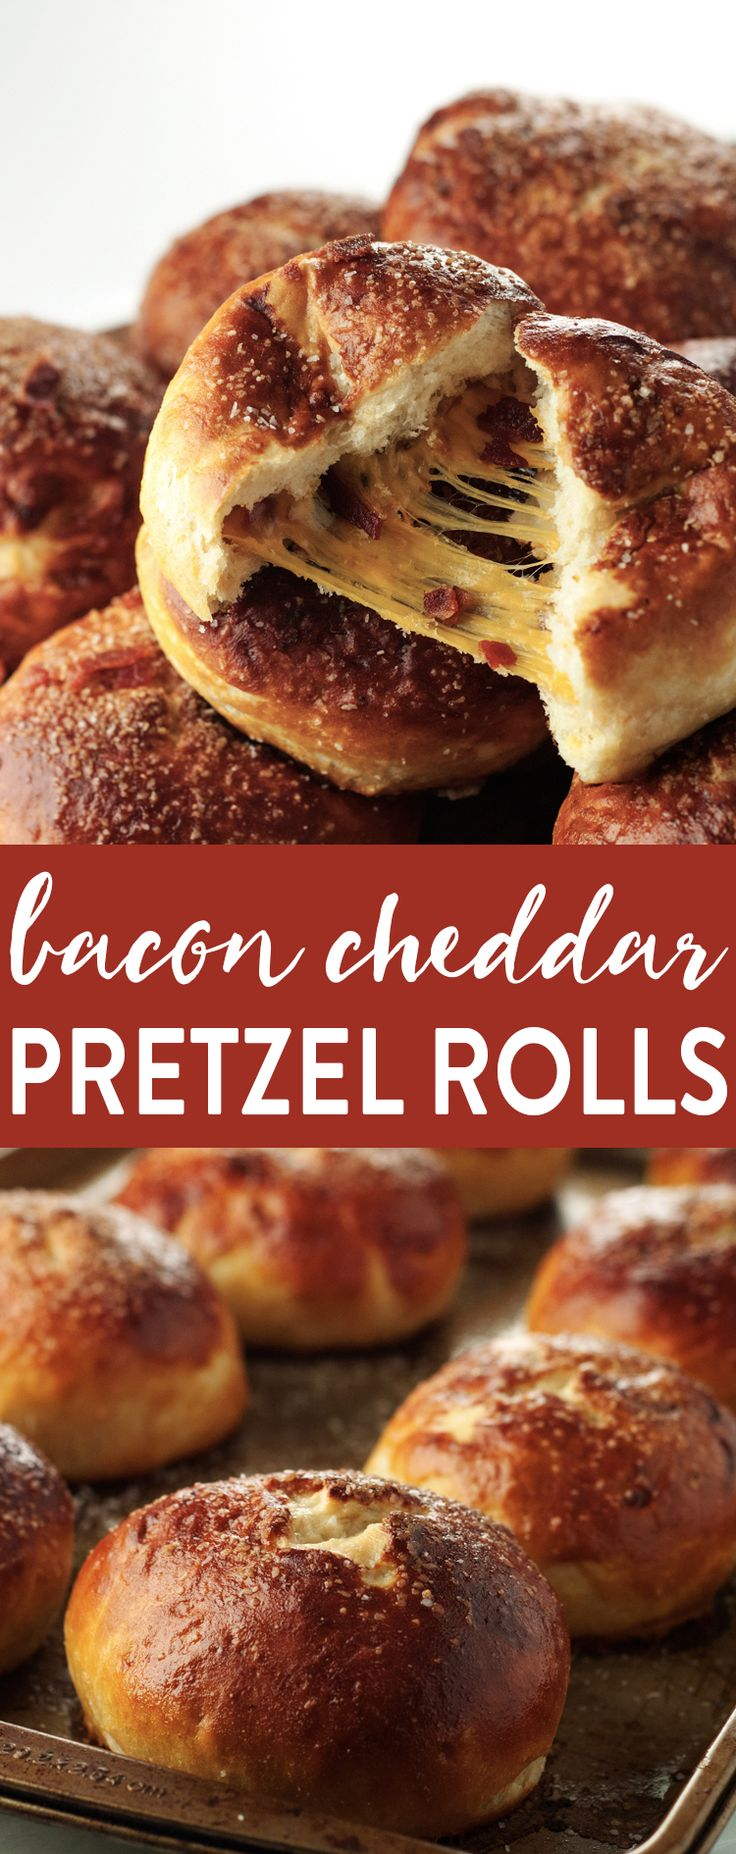 We've hit the motherload of amazing flavor with these Bacon Cheddar Pretzel Rolls! Gooey, cheesy center filled with bacon and salty, pretzel-y outside FTW!